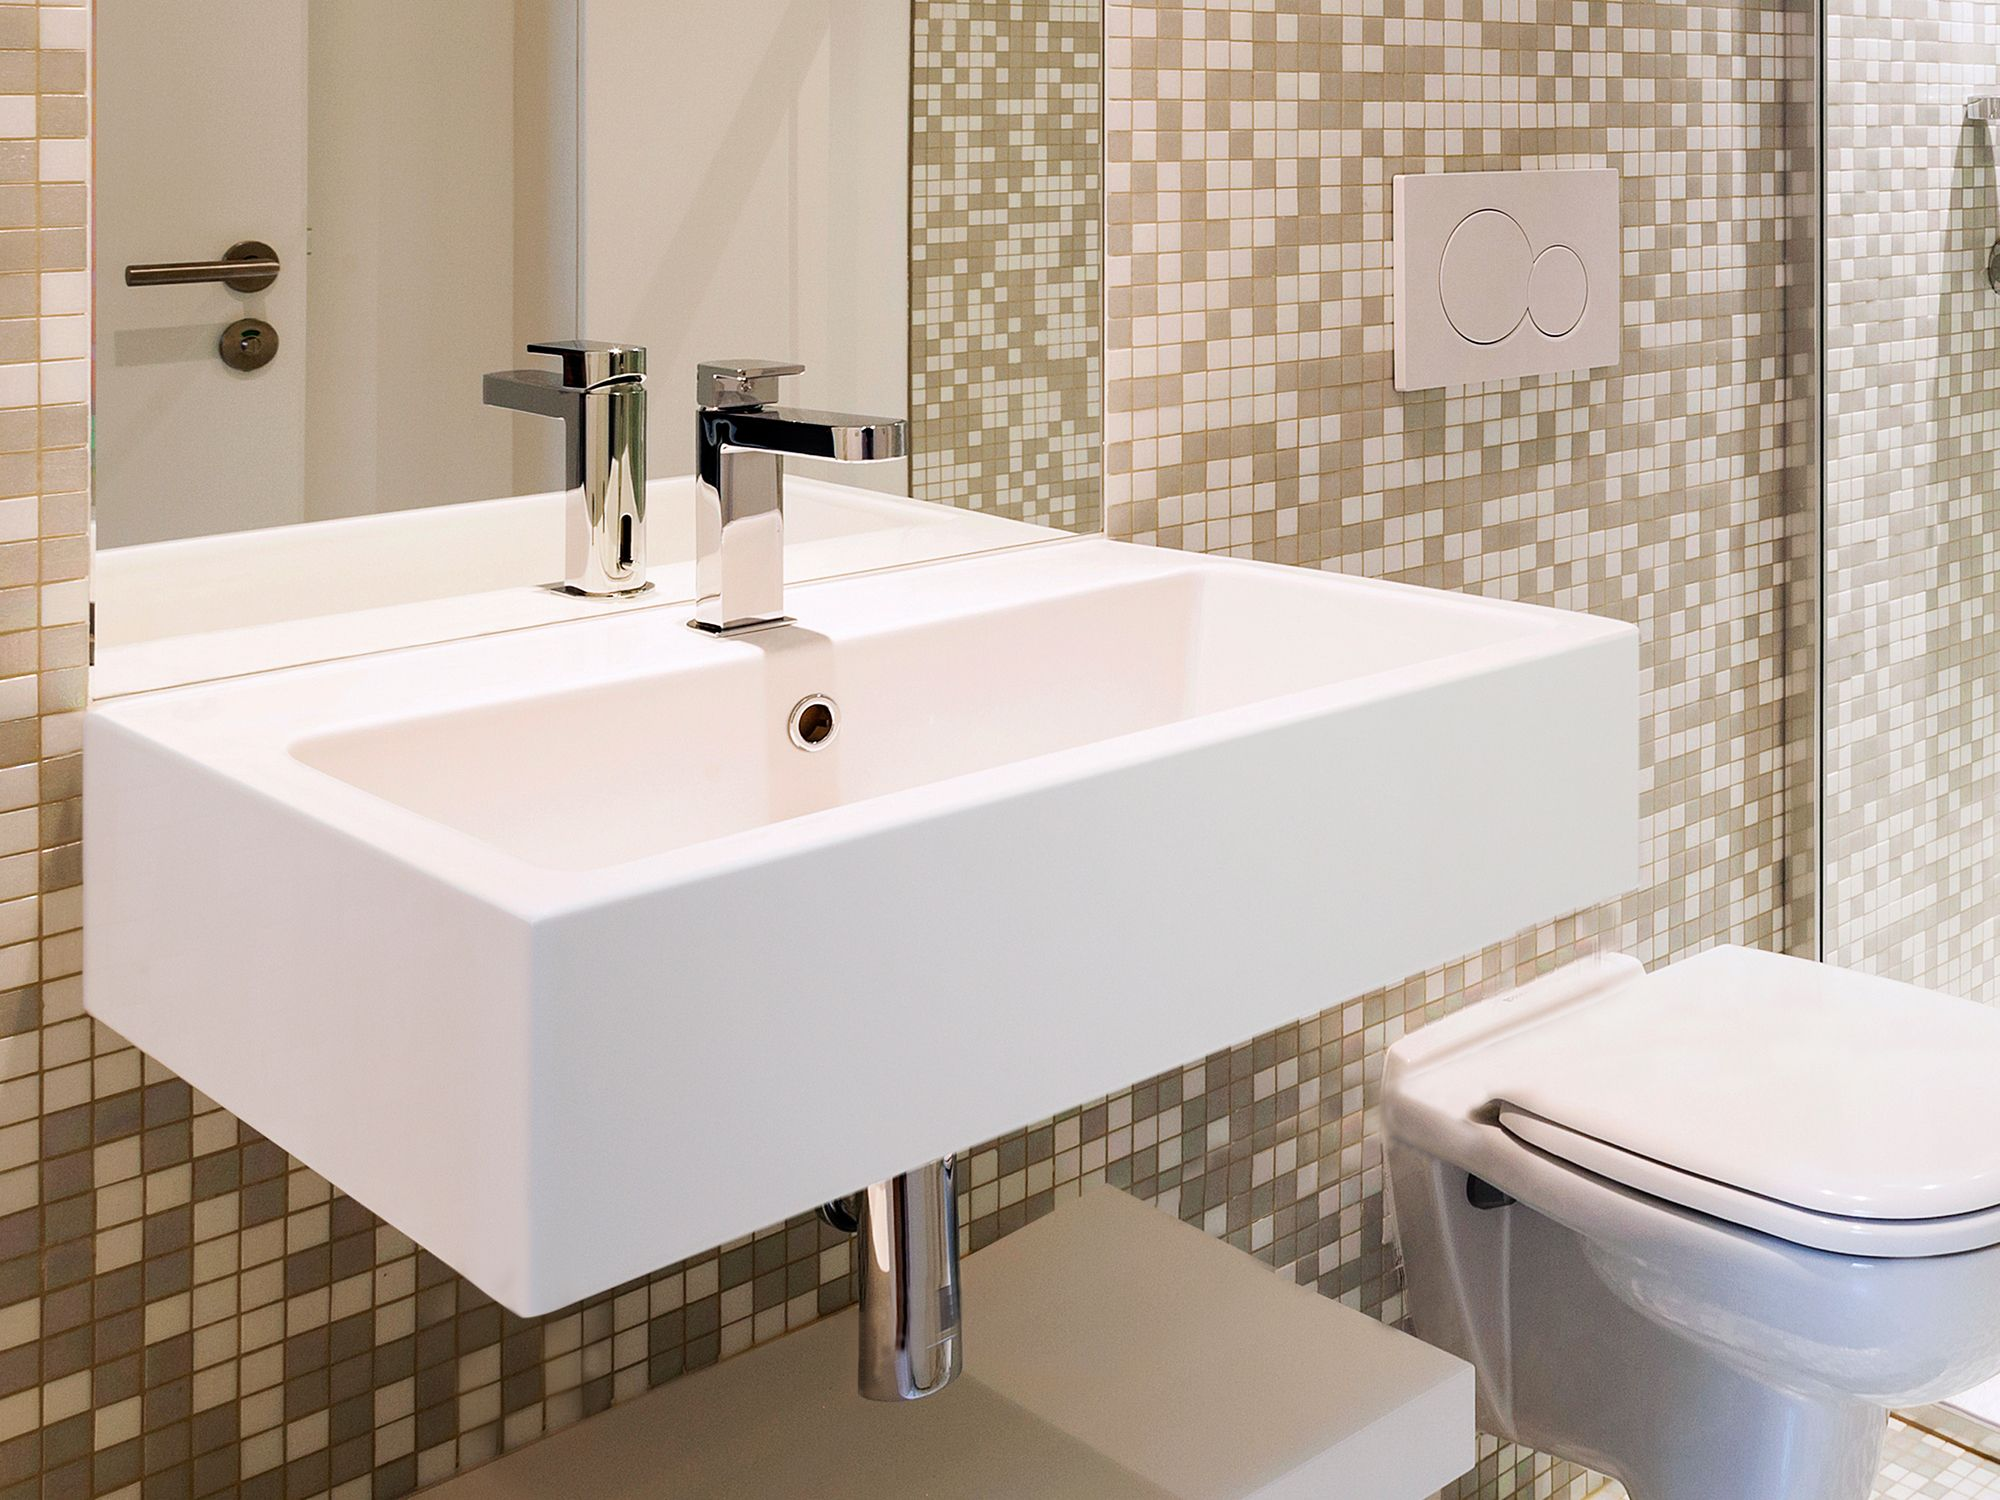 Lavabo Solid Surface a Barcelona de SDZ Bany